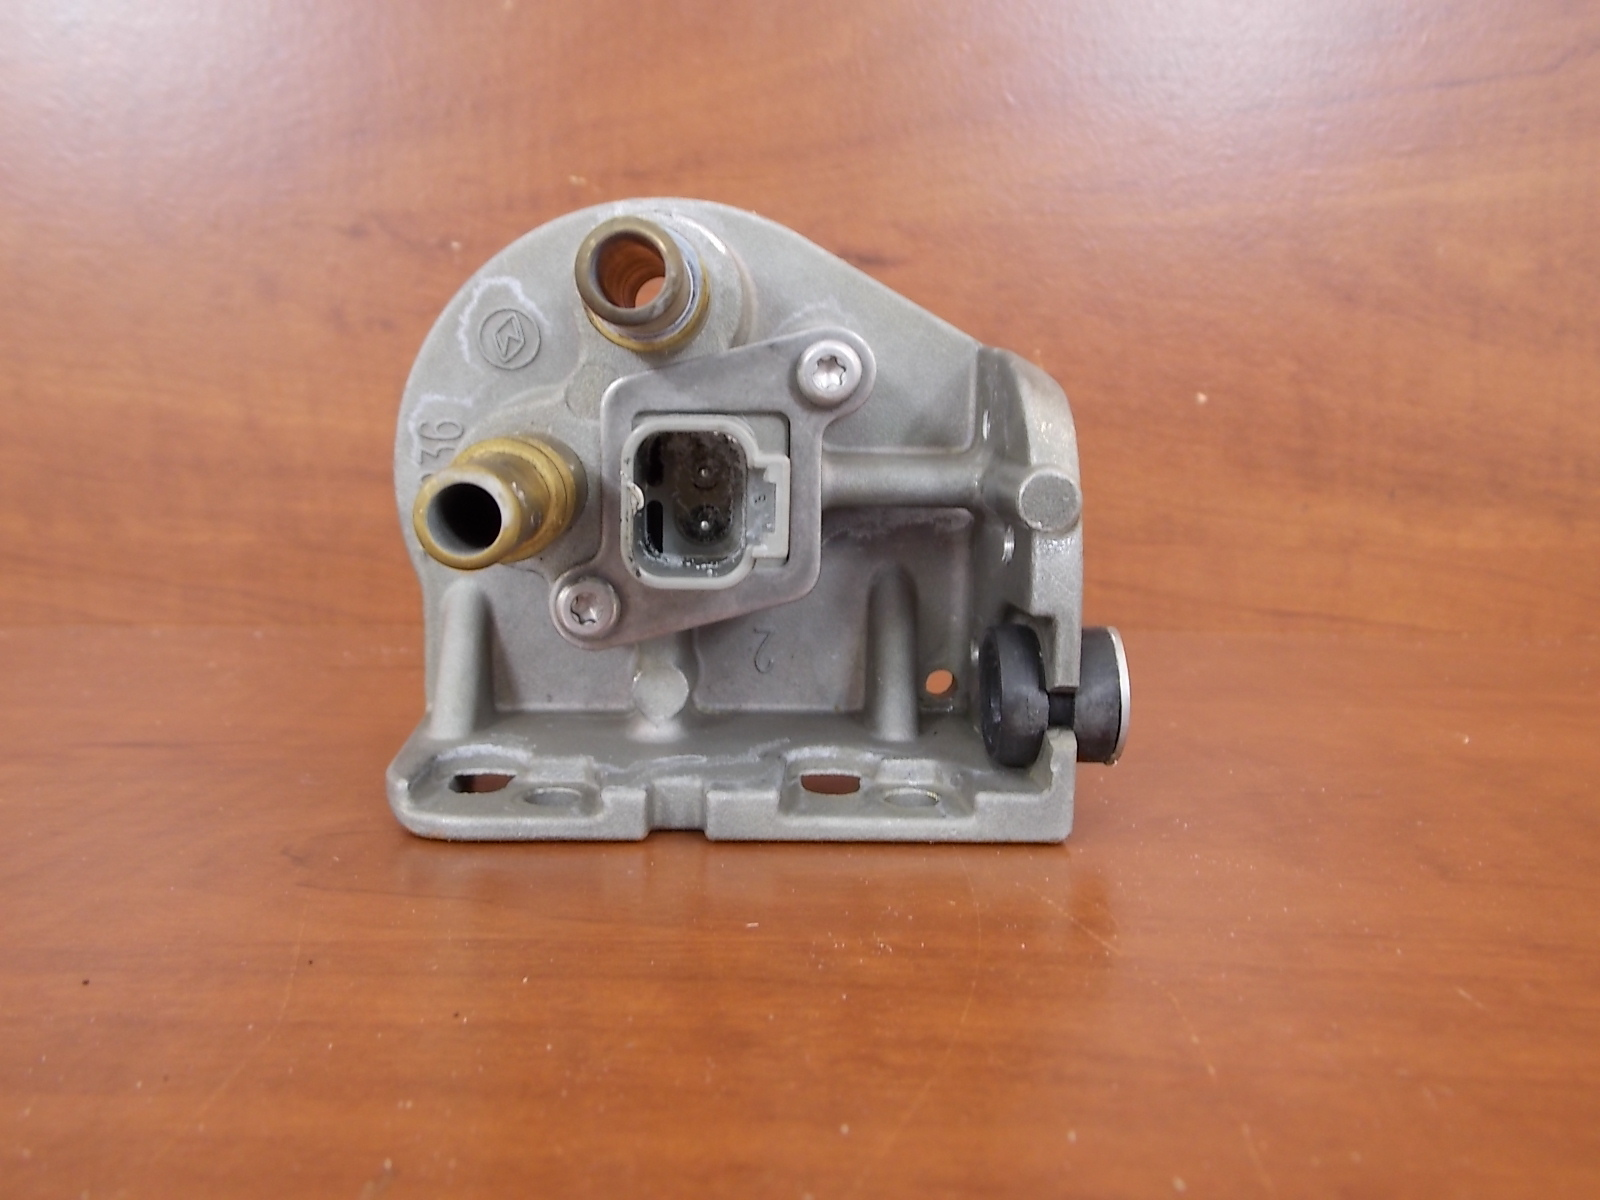 ... 1998-2001 Johnson Evinrude Fuel Filter Housing 439633 75 90 115 135 150  175 HP